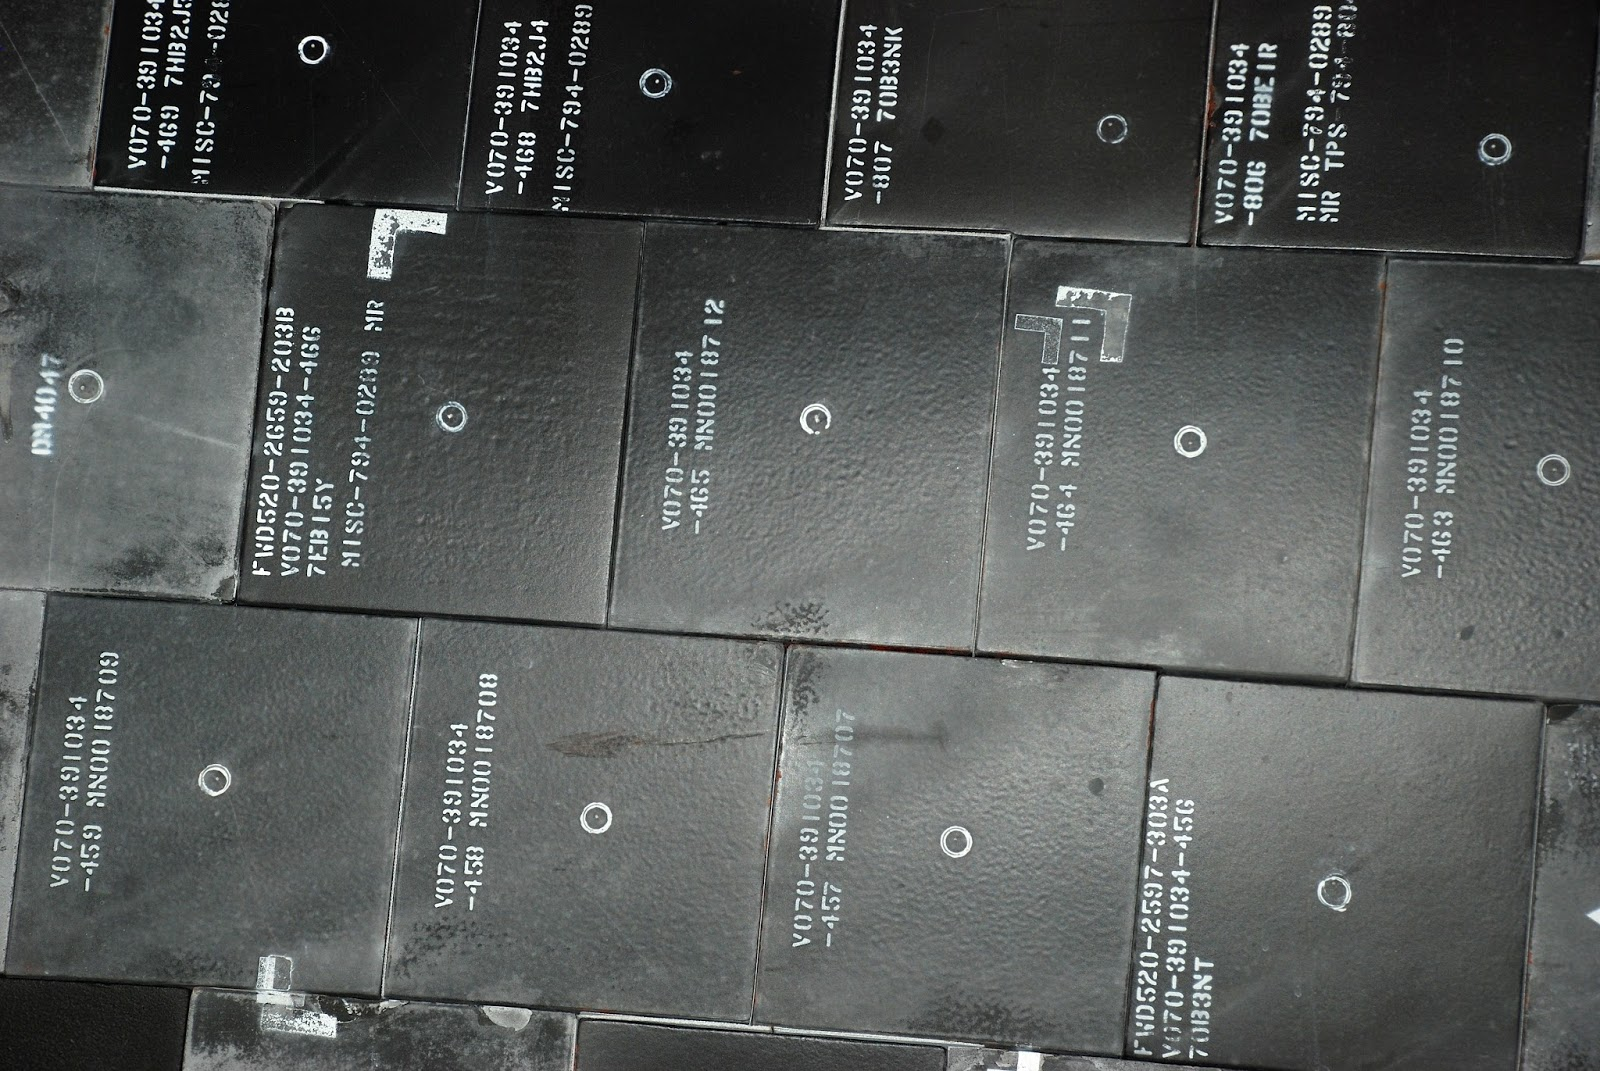 space shuttle heat shield tiles - photo #26